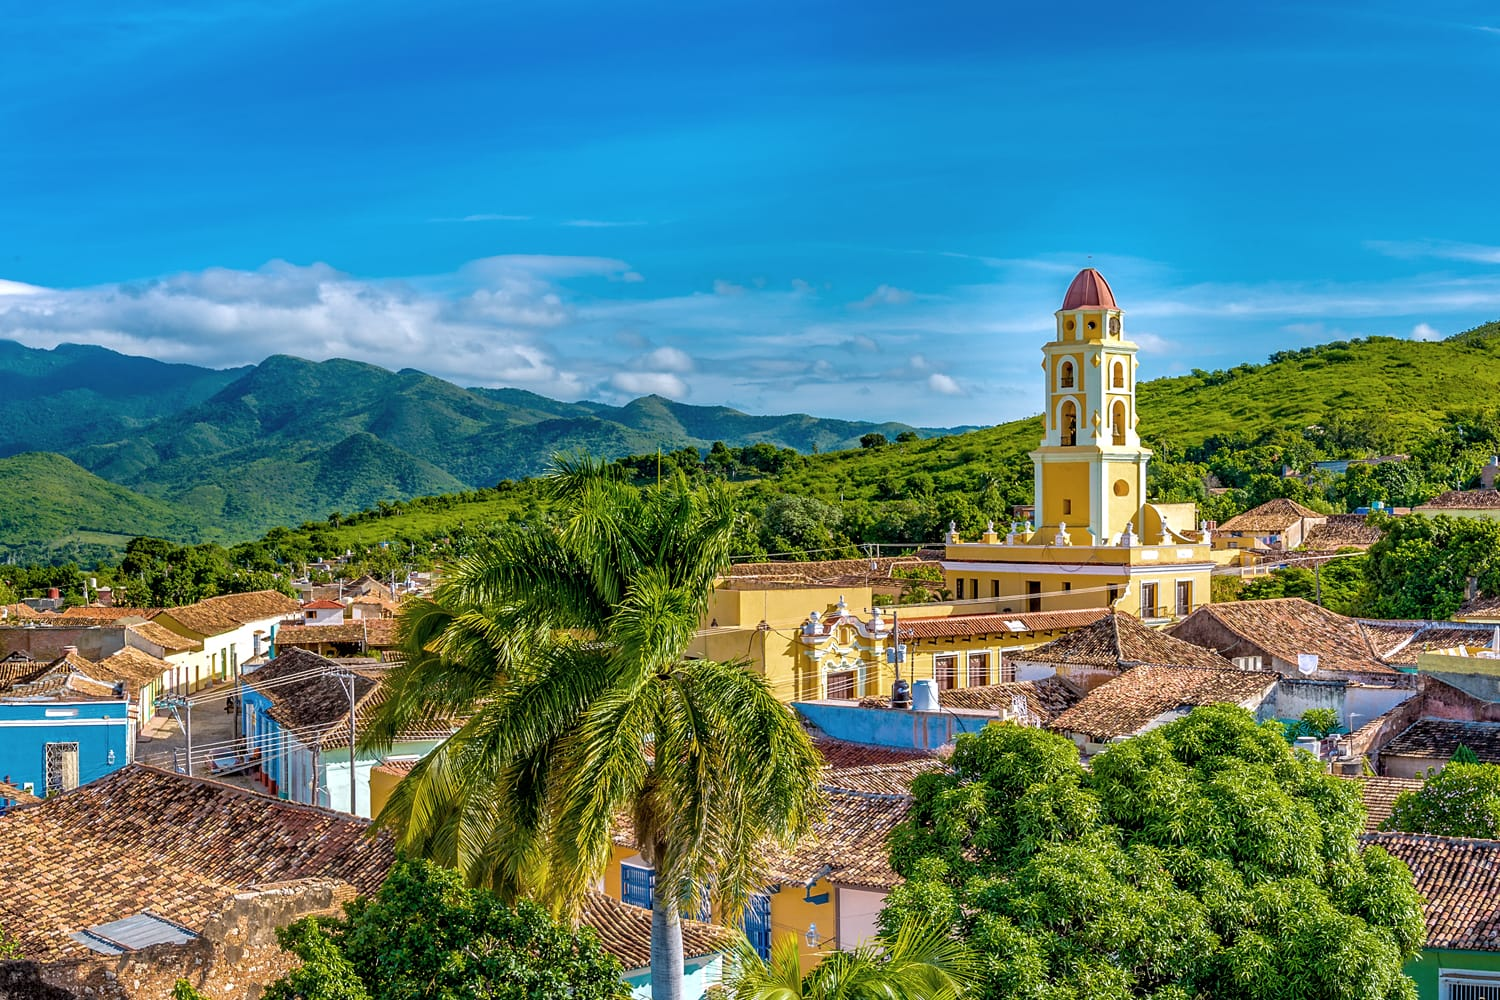 Trinidad de Cuba, panoramic skyline with mountains and colonial houses.